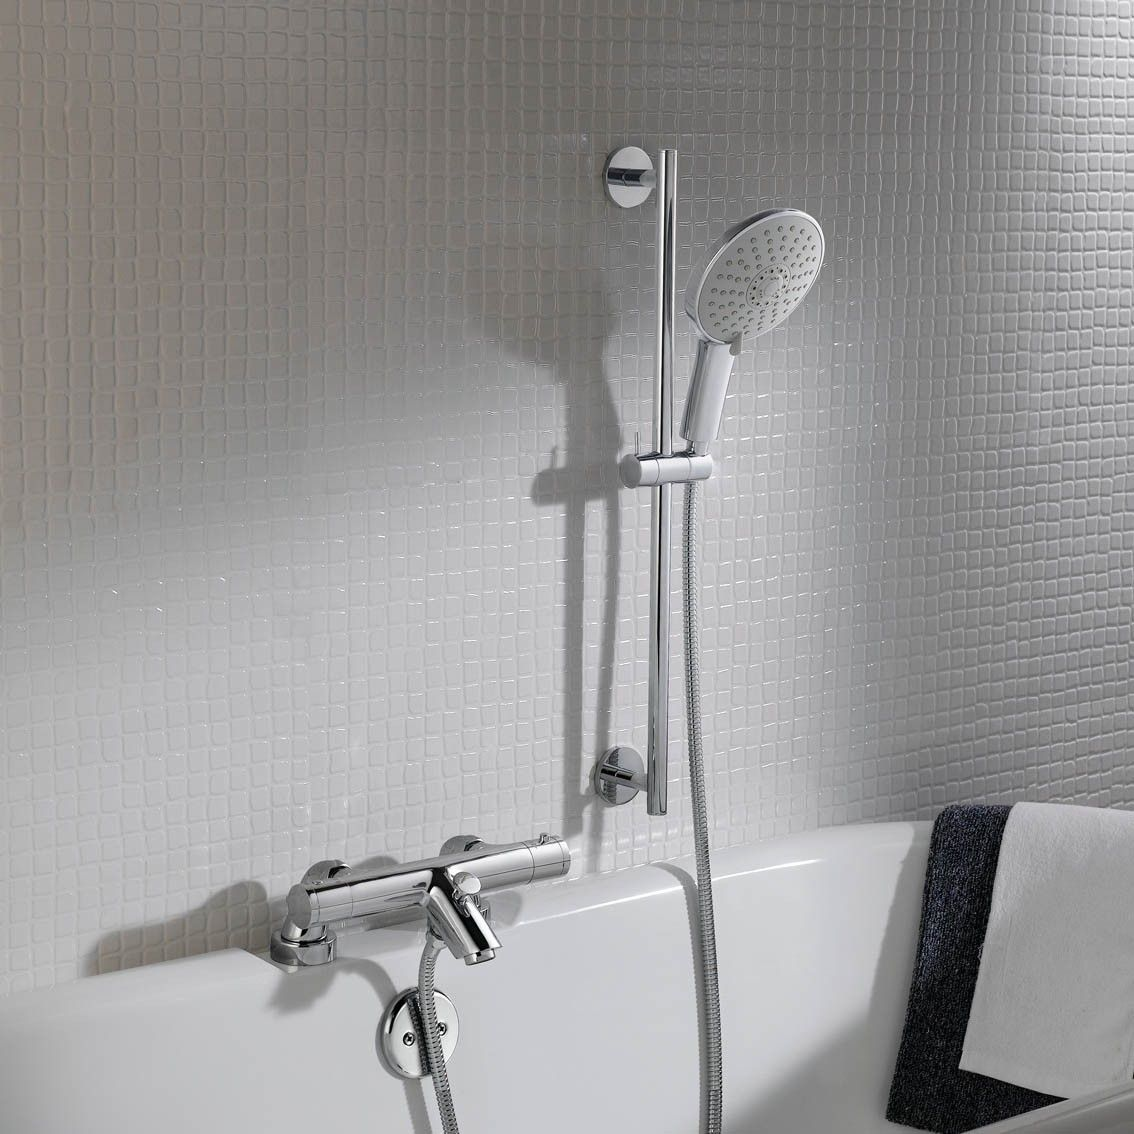 Round Bar Mixer Shower Kit With Bath Filler Multi Function Hand